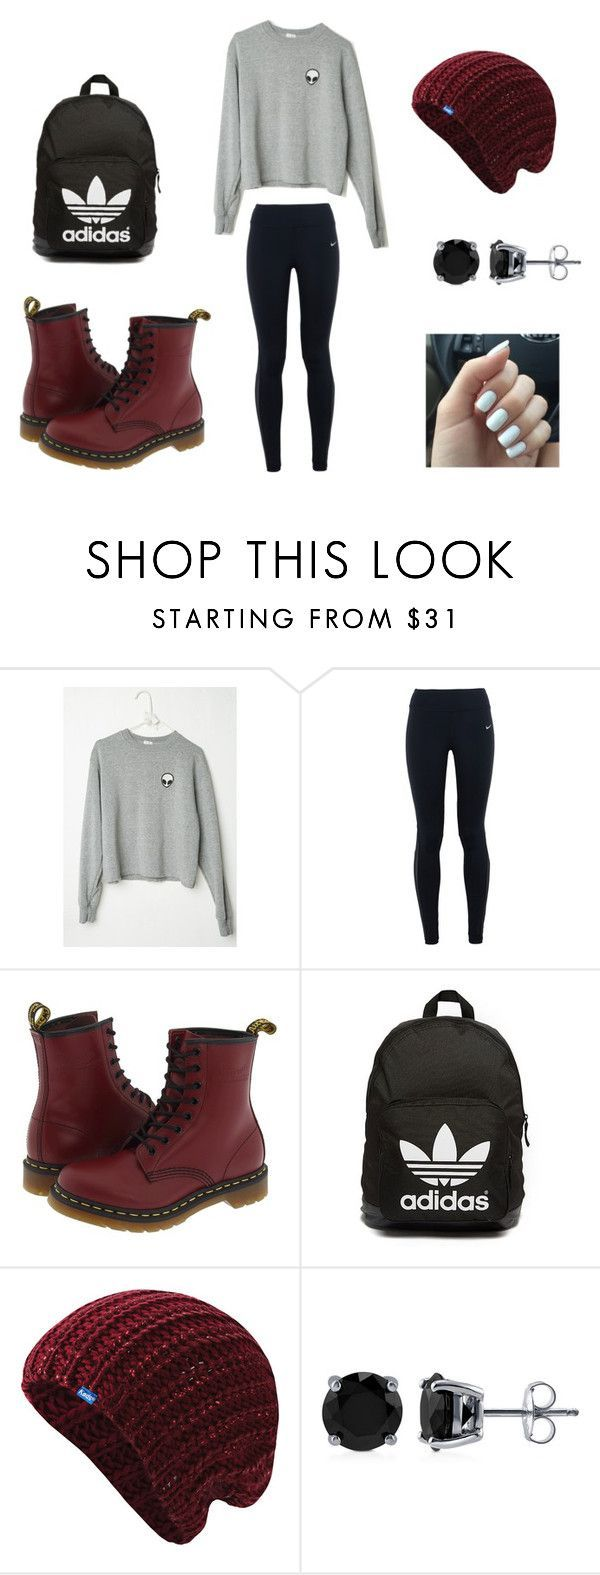 """""""Hipster/Urban School Outfit"""" by vickerygk on Polyvore featuring NIKE, Dr. Martens, adidas Originals, Keds, BERRICLE, women's clothing, women's fashion, women, female and woman"""